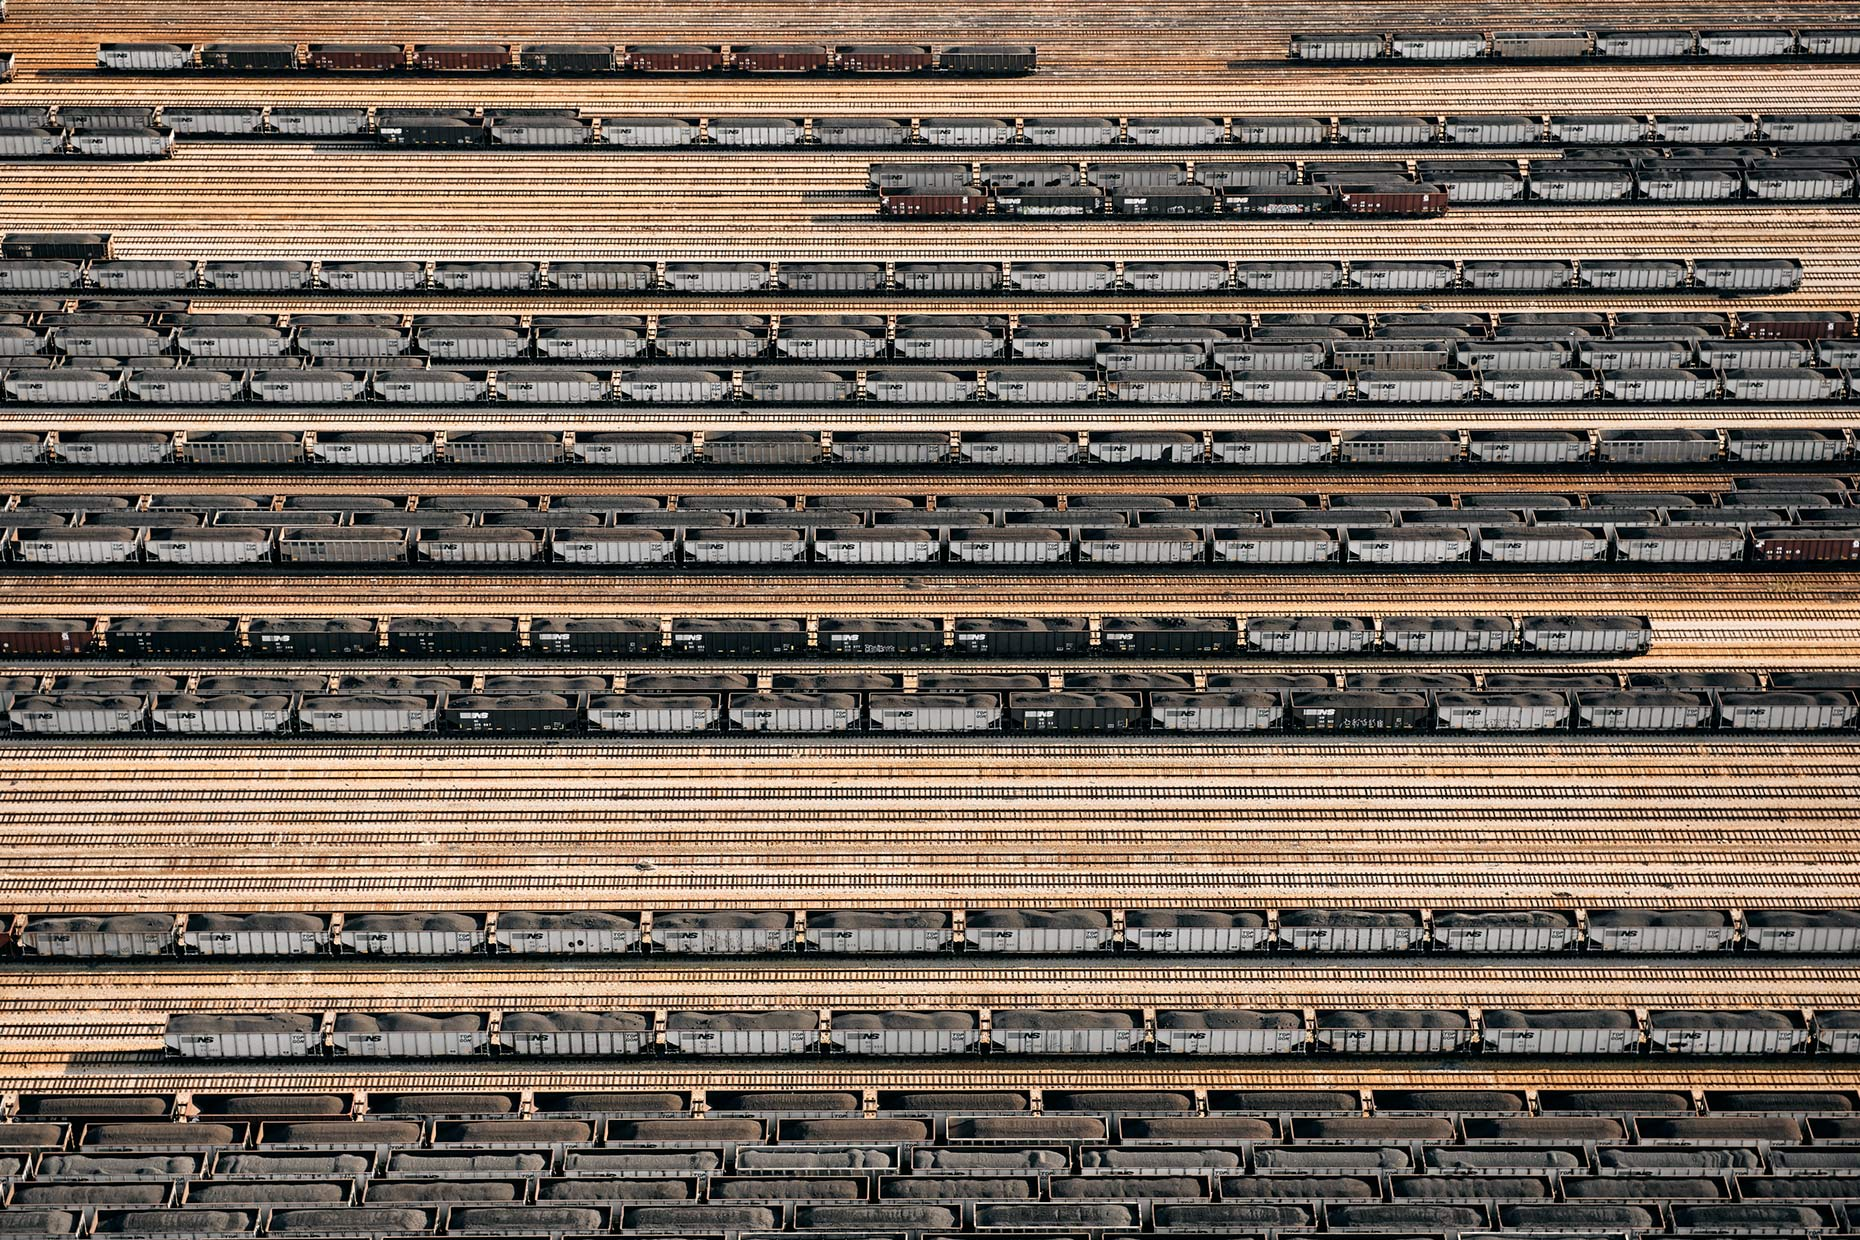 Aerial Coal Trains in Virginia